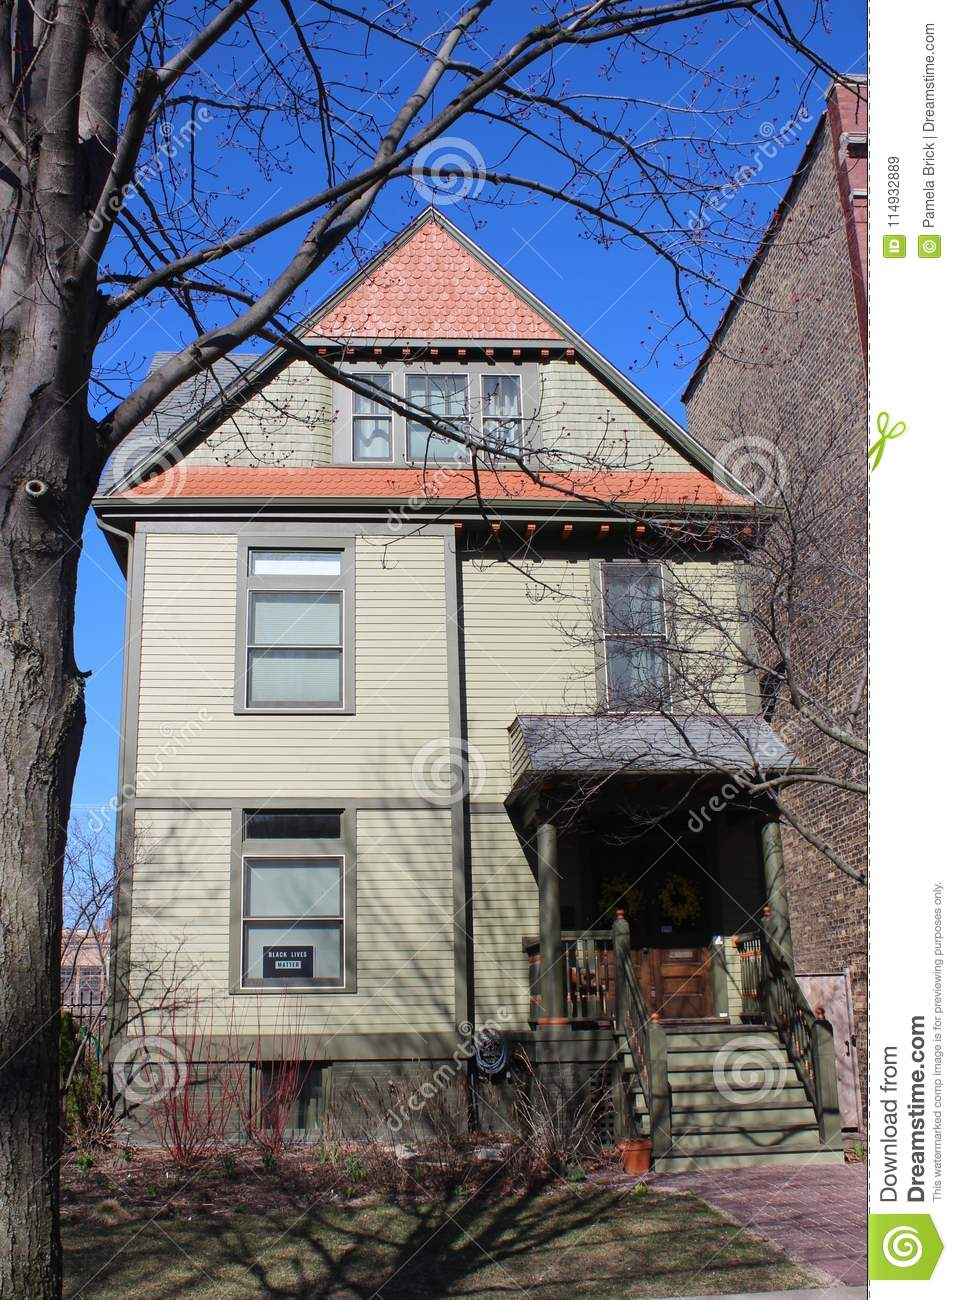 Poet Carl Sandburg Home In Chicago, Illinois. Editorial Stock Image ...